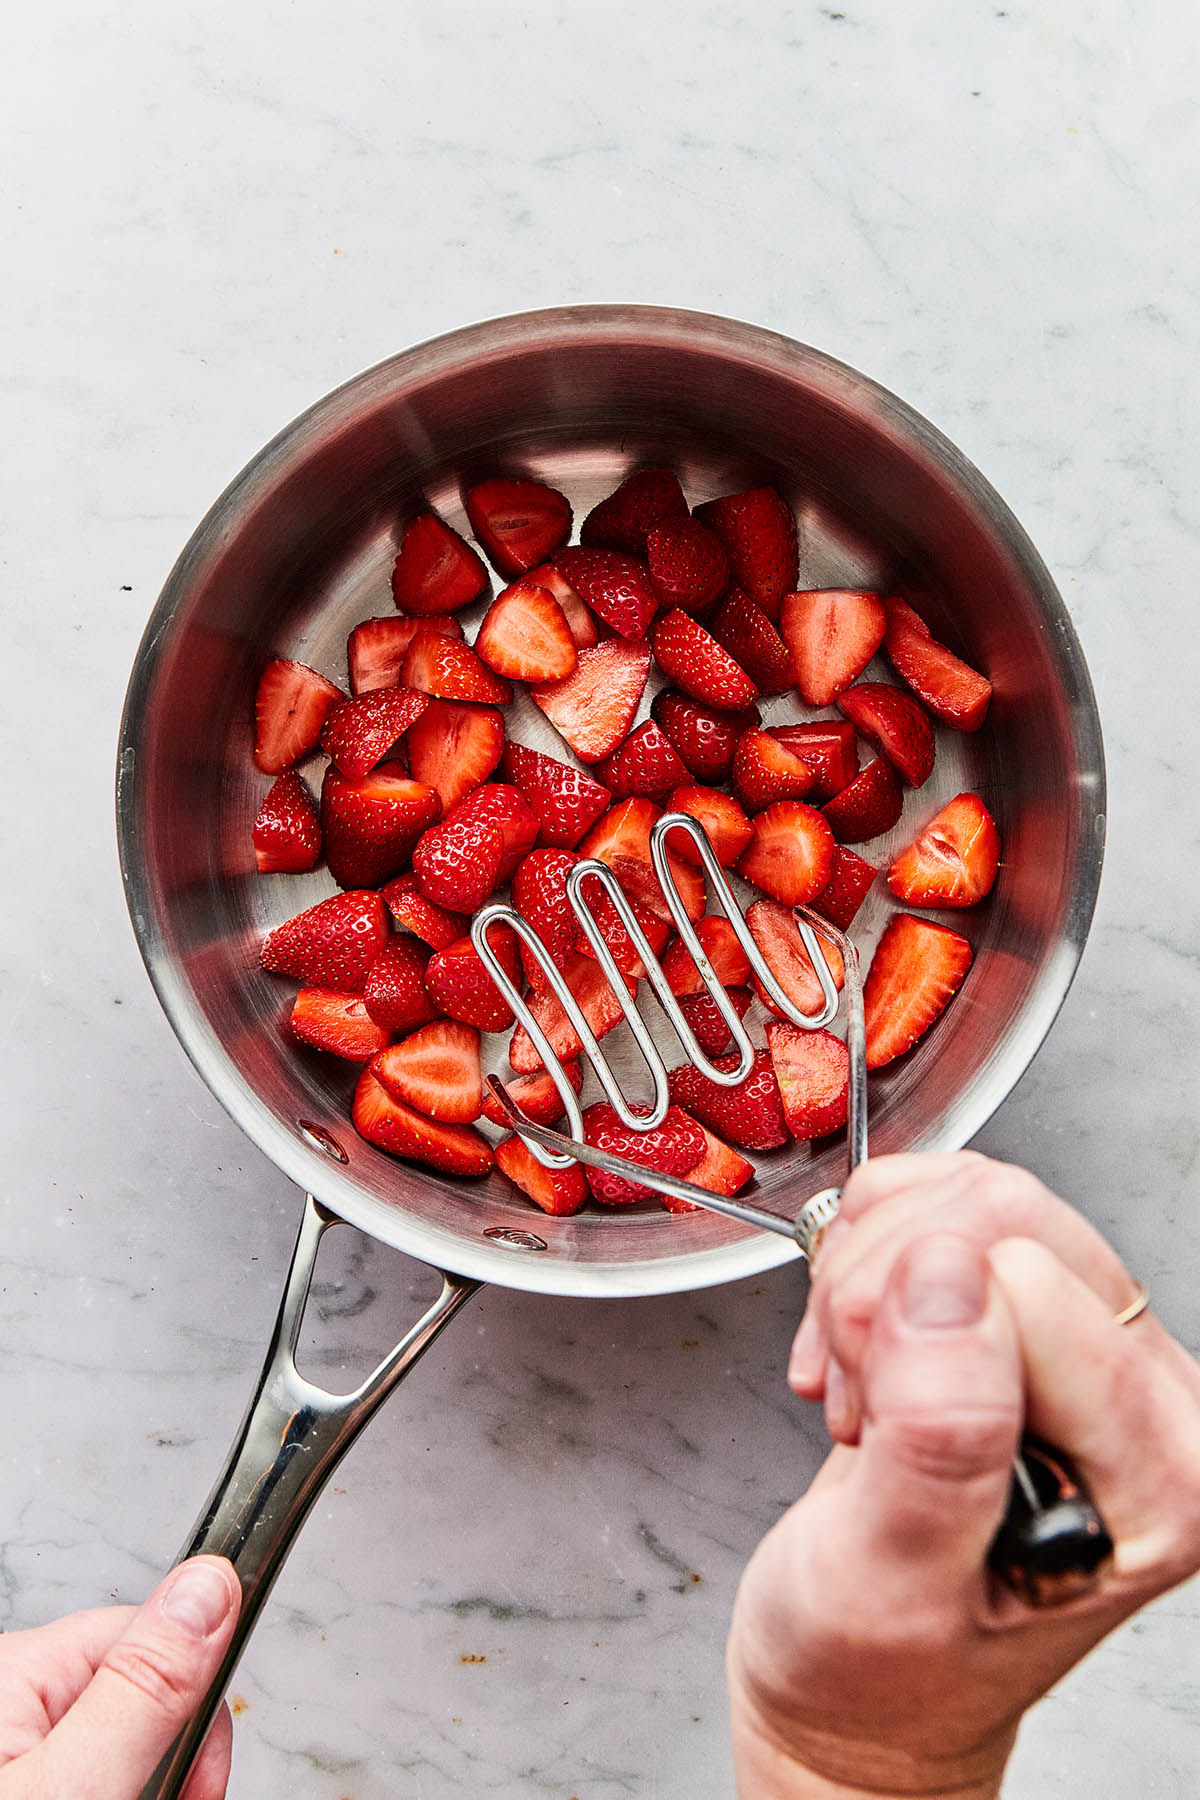 A hand holding a potato masher about to crush strawberries in a pot.